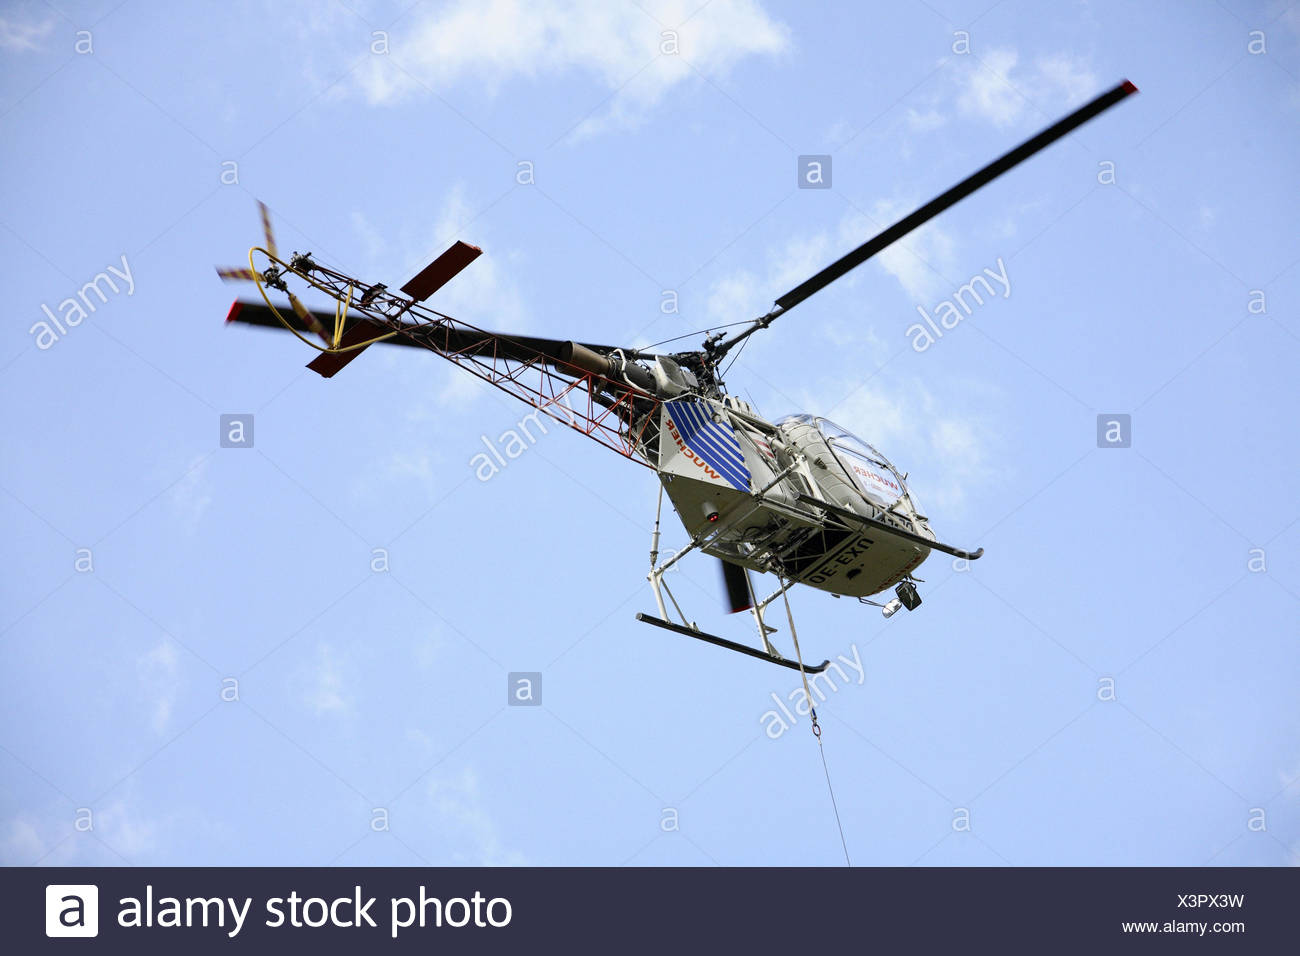 Cloudy skies, costs helicopters, from below, helicopter, helicopter, fly, helicopter flight, costs, transport, transport flight, helicopter entry, charge, loading, Zubringung, airway, perspective, Stock Photo